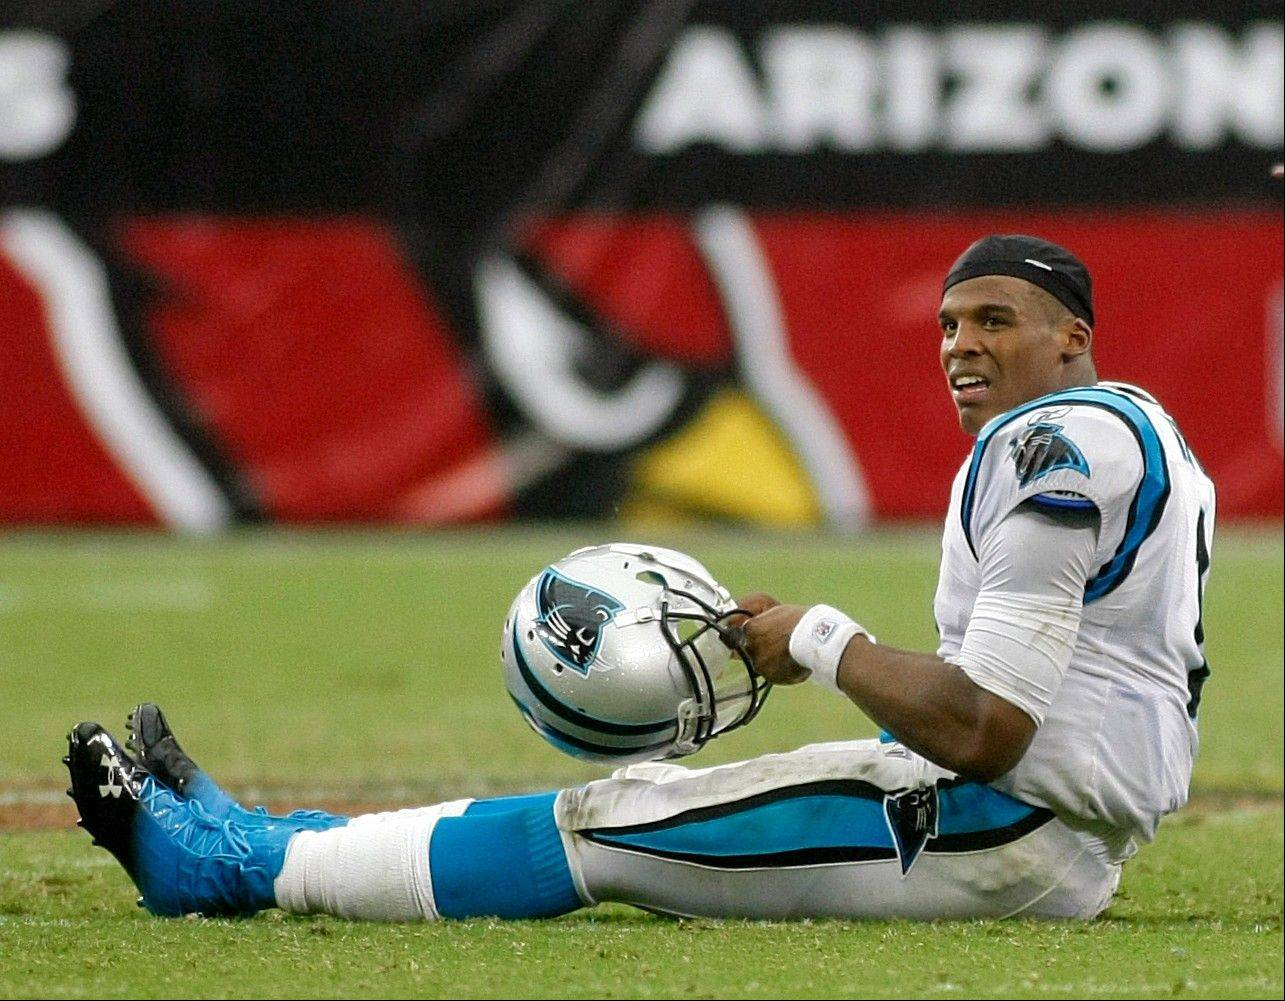 Carolina Panthers quarterback Cam Newton had an incredible day against the Arizona Cardinals, but he should find it much tougher to put up big numbers against the Green Bay Packers this week.